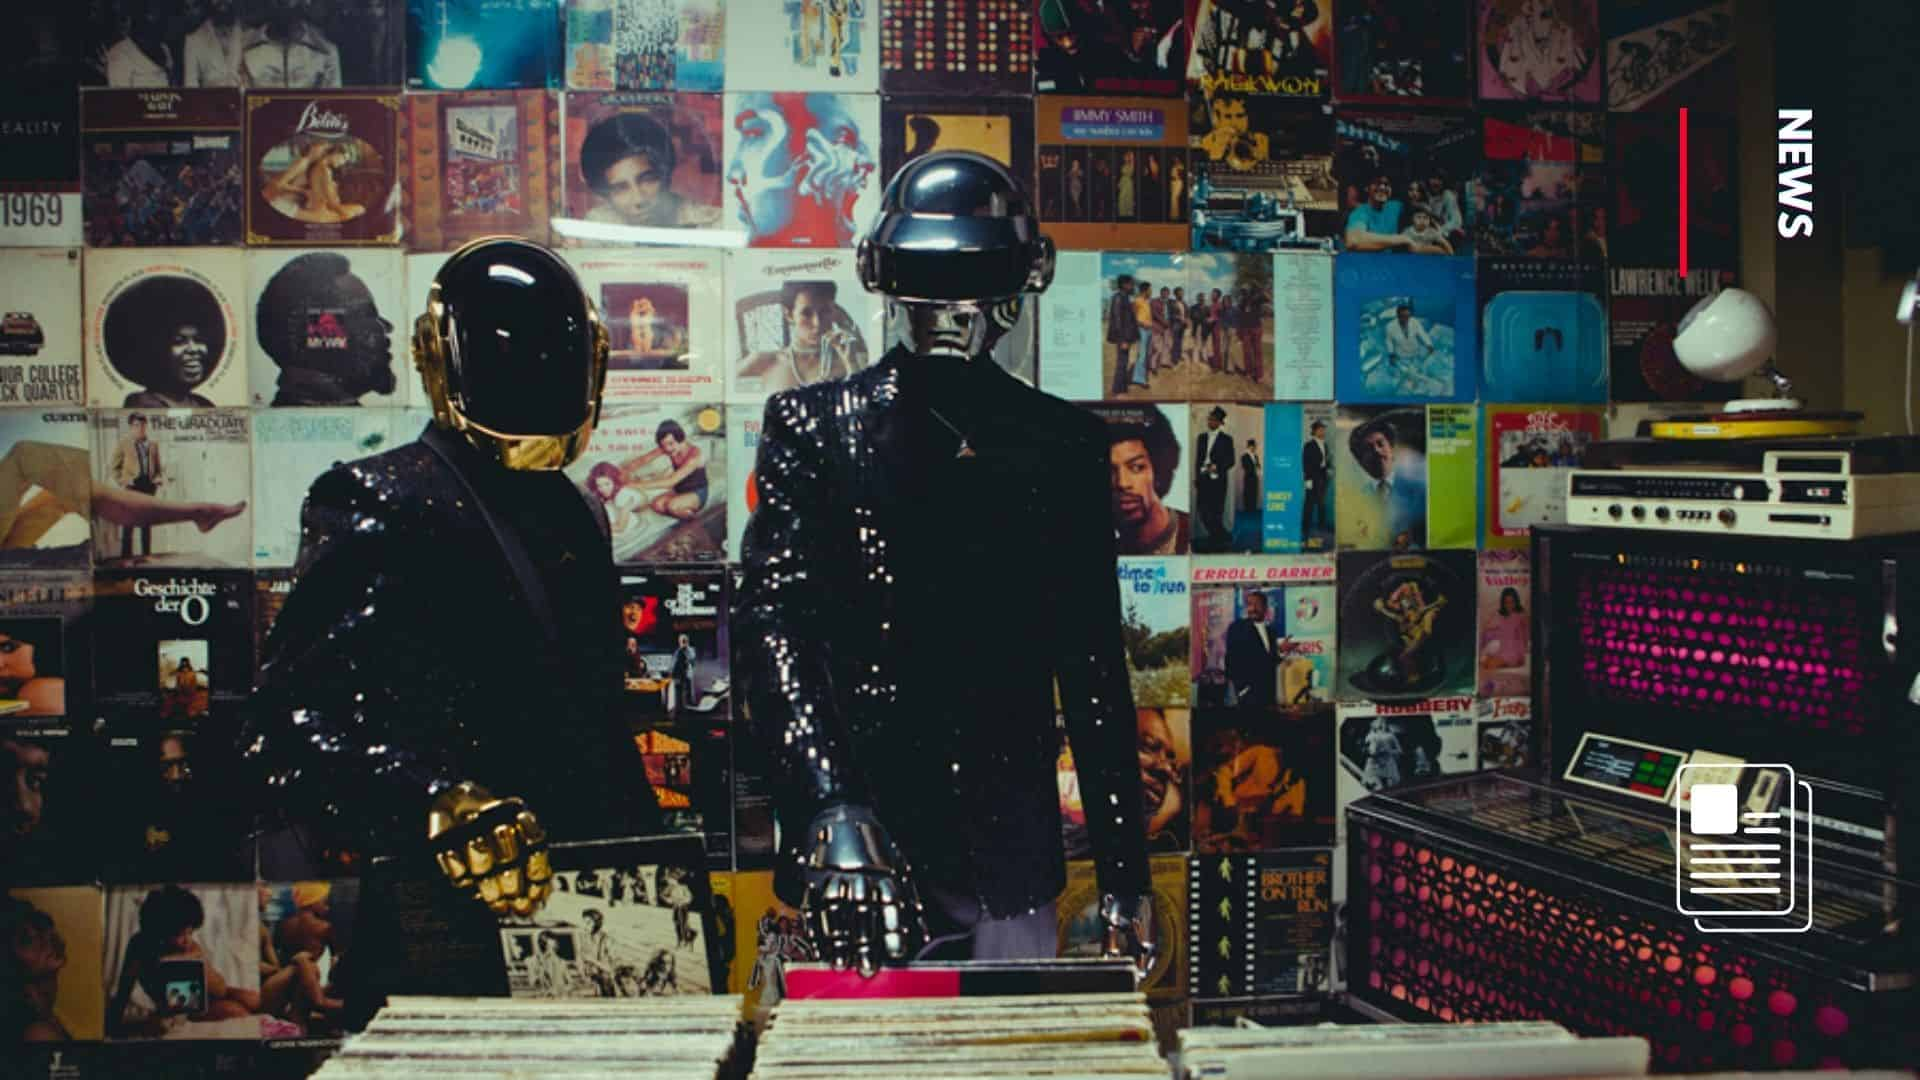 List of sampled songs by Daft Punk